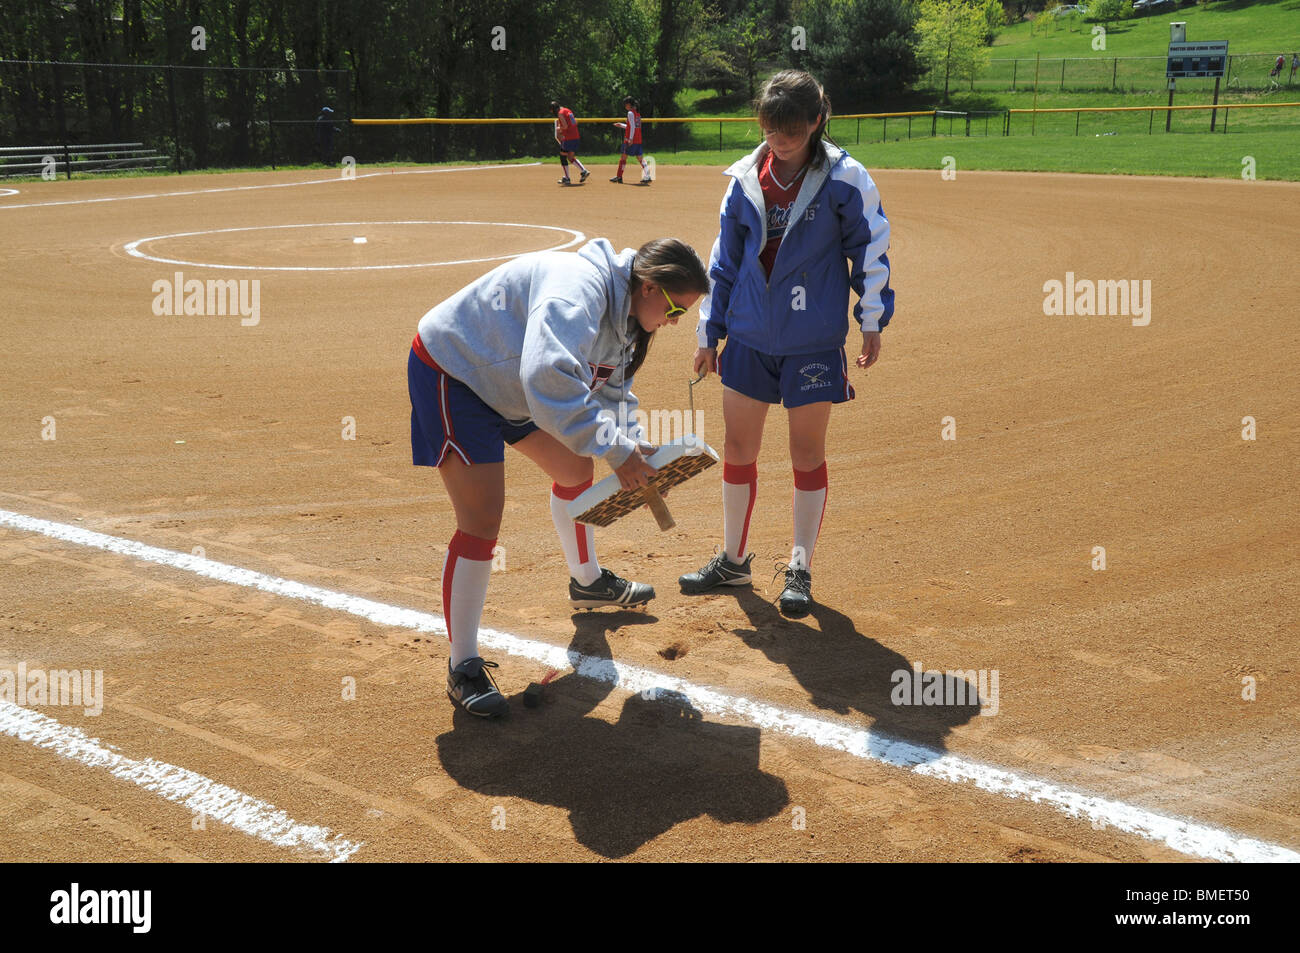 Two girls repair  one of the bases used in a baseball game - Stock Image